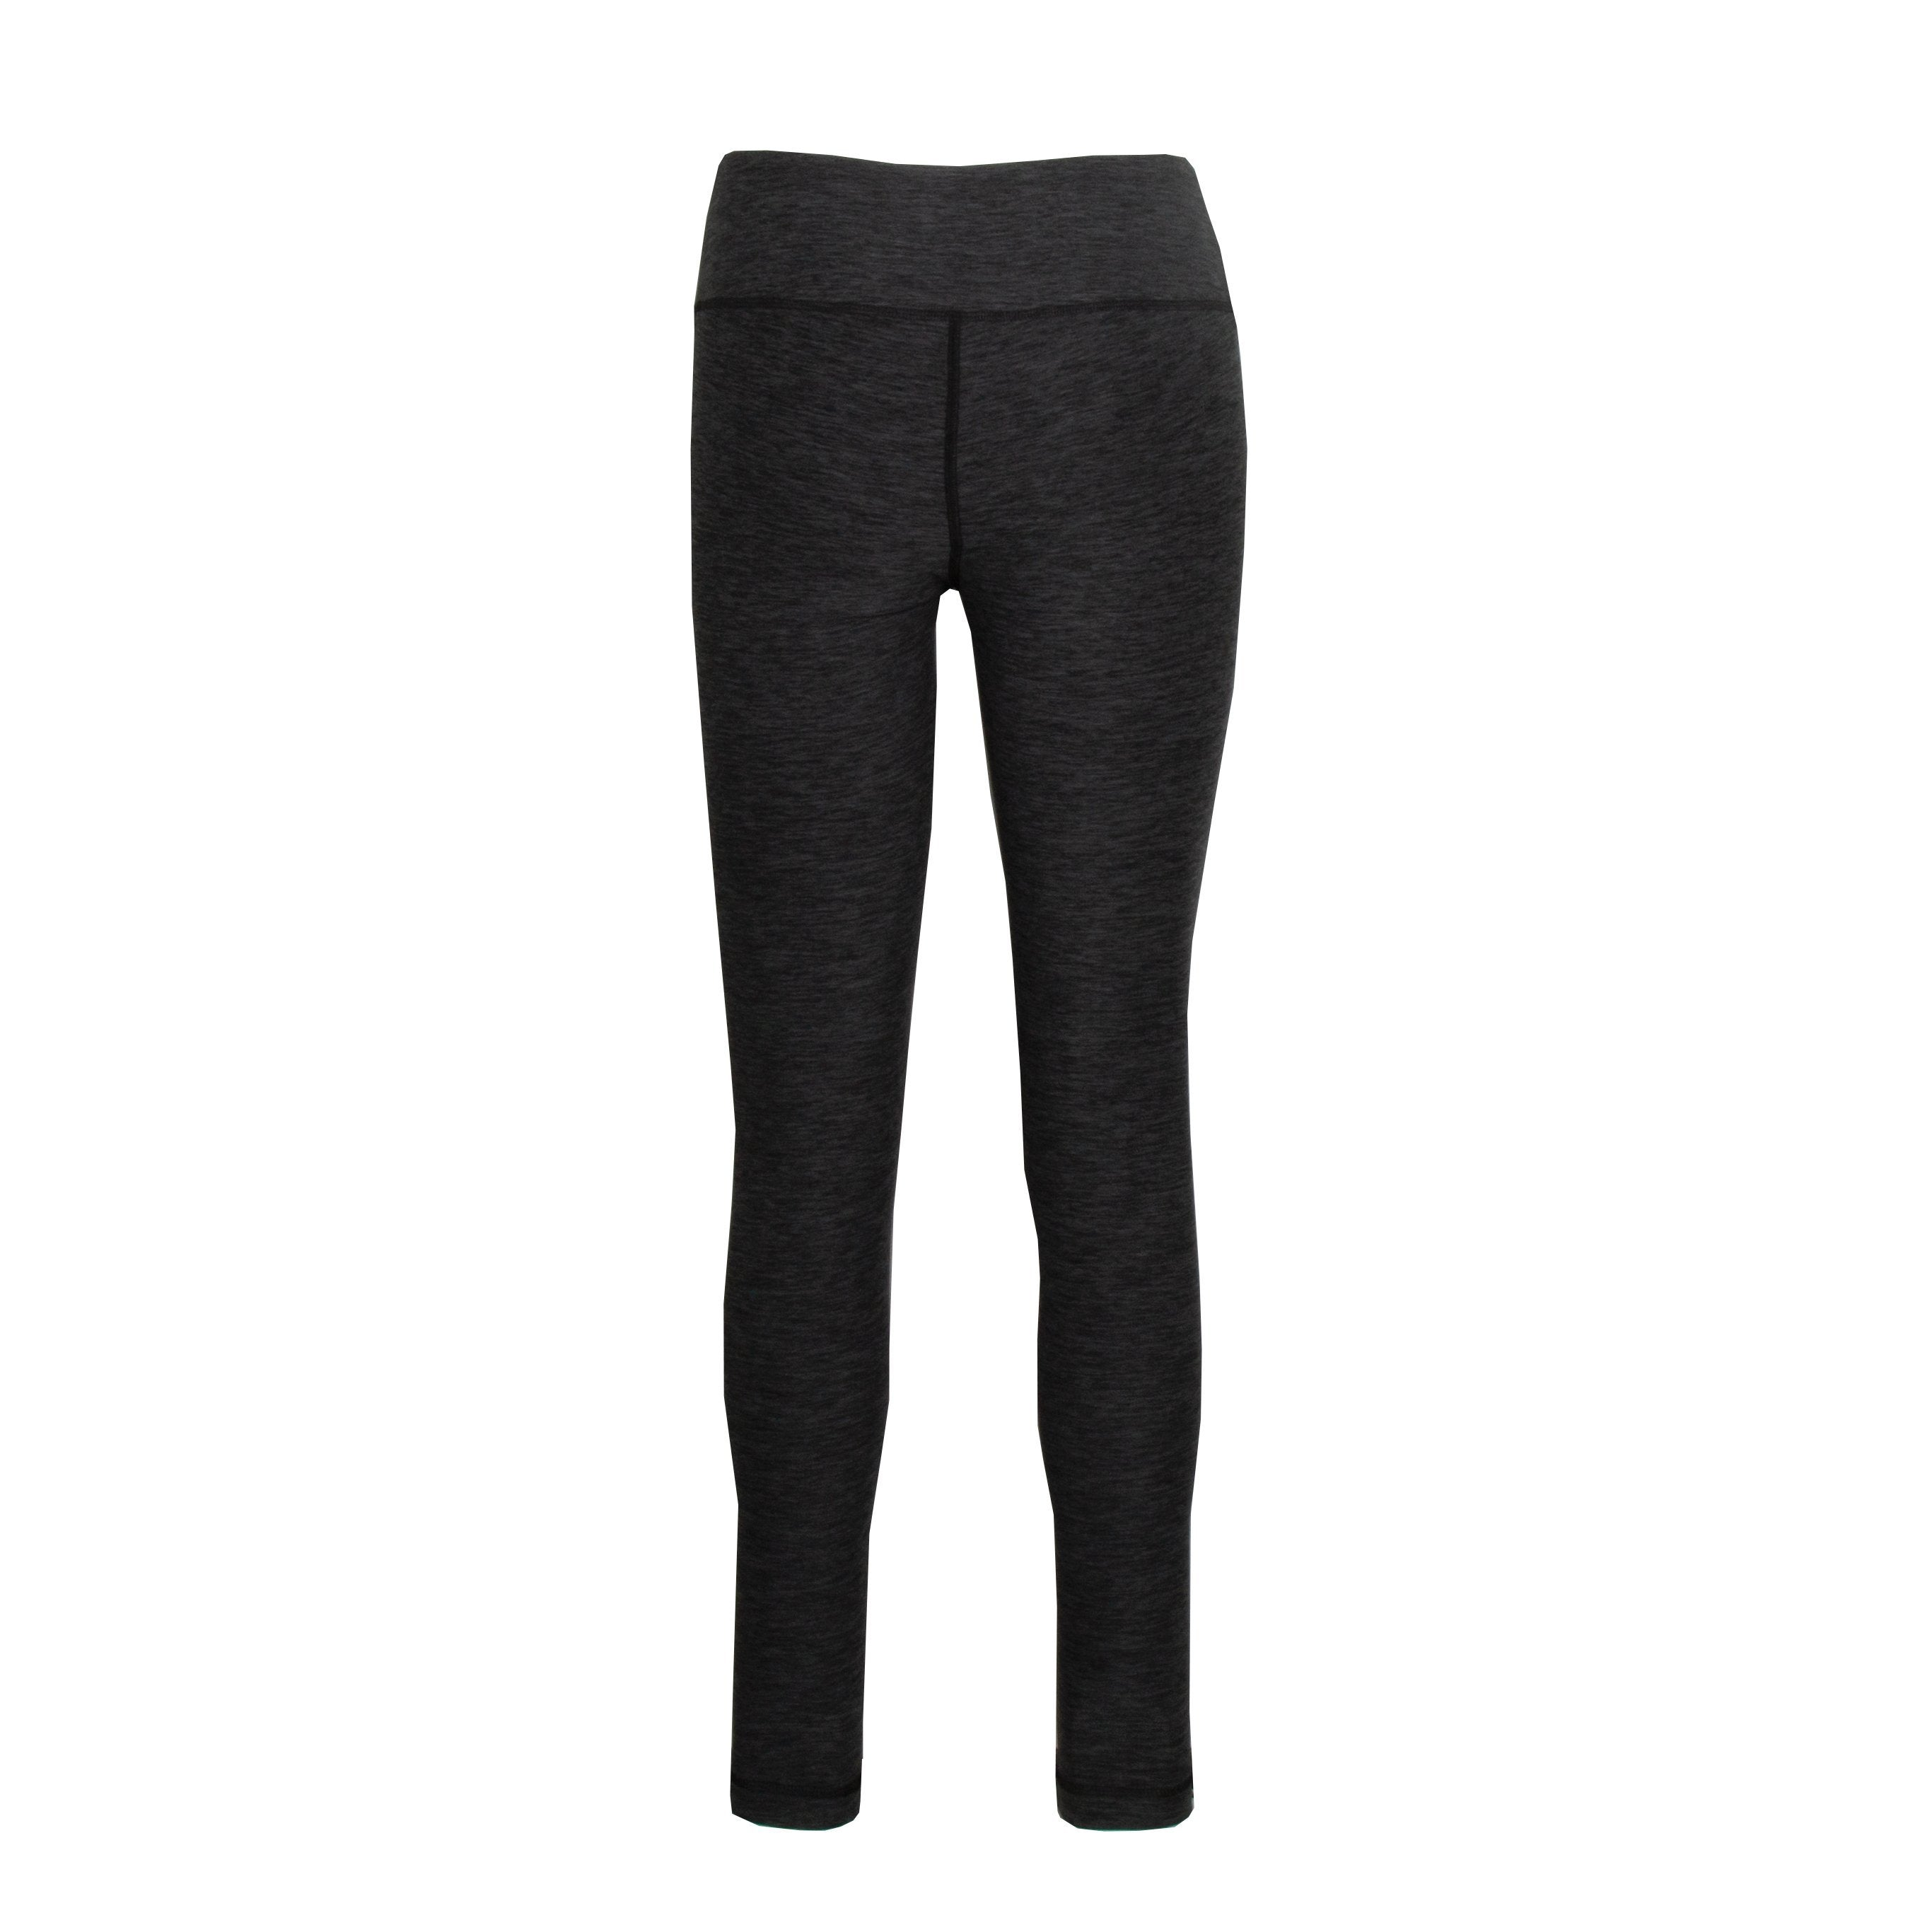 L600CV Heathered Leggings Full Length - Caviar